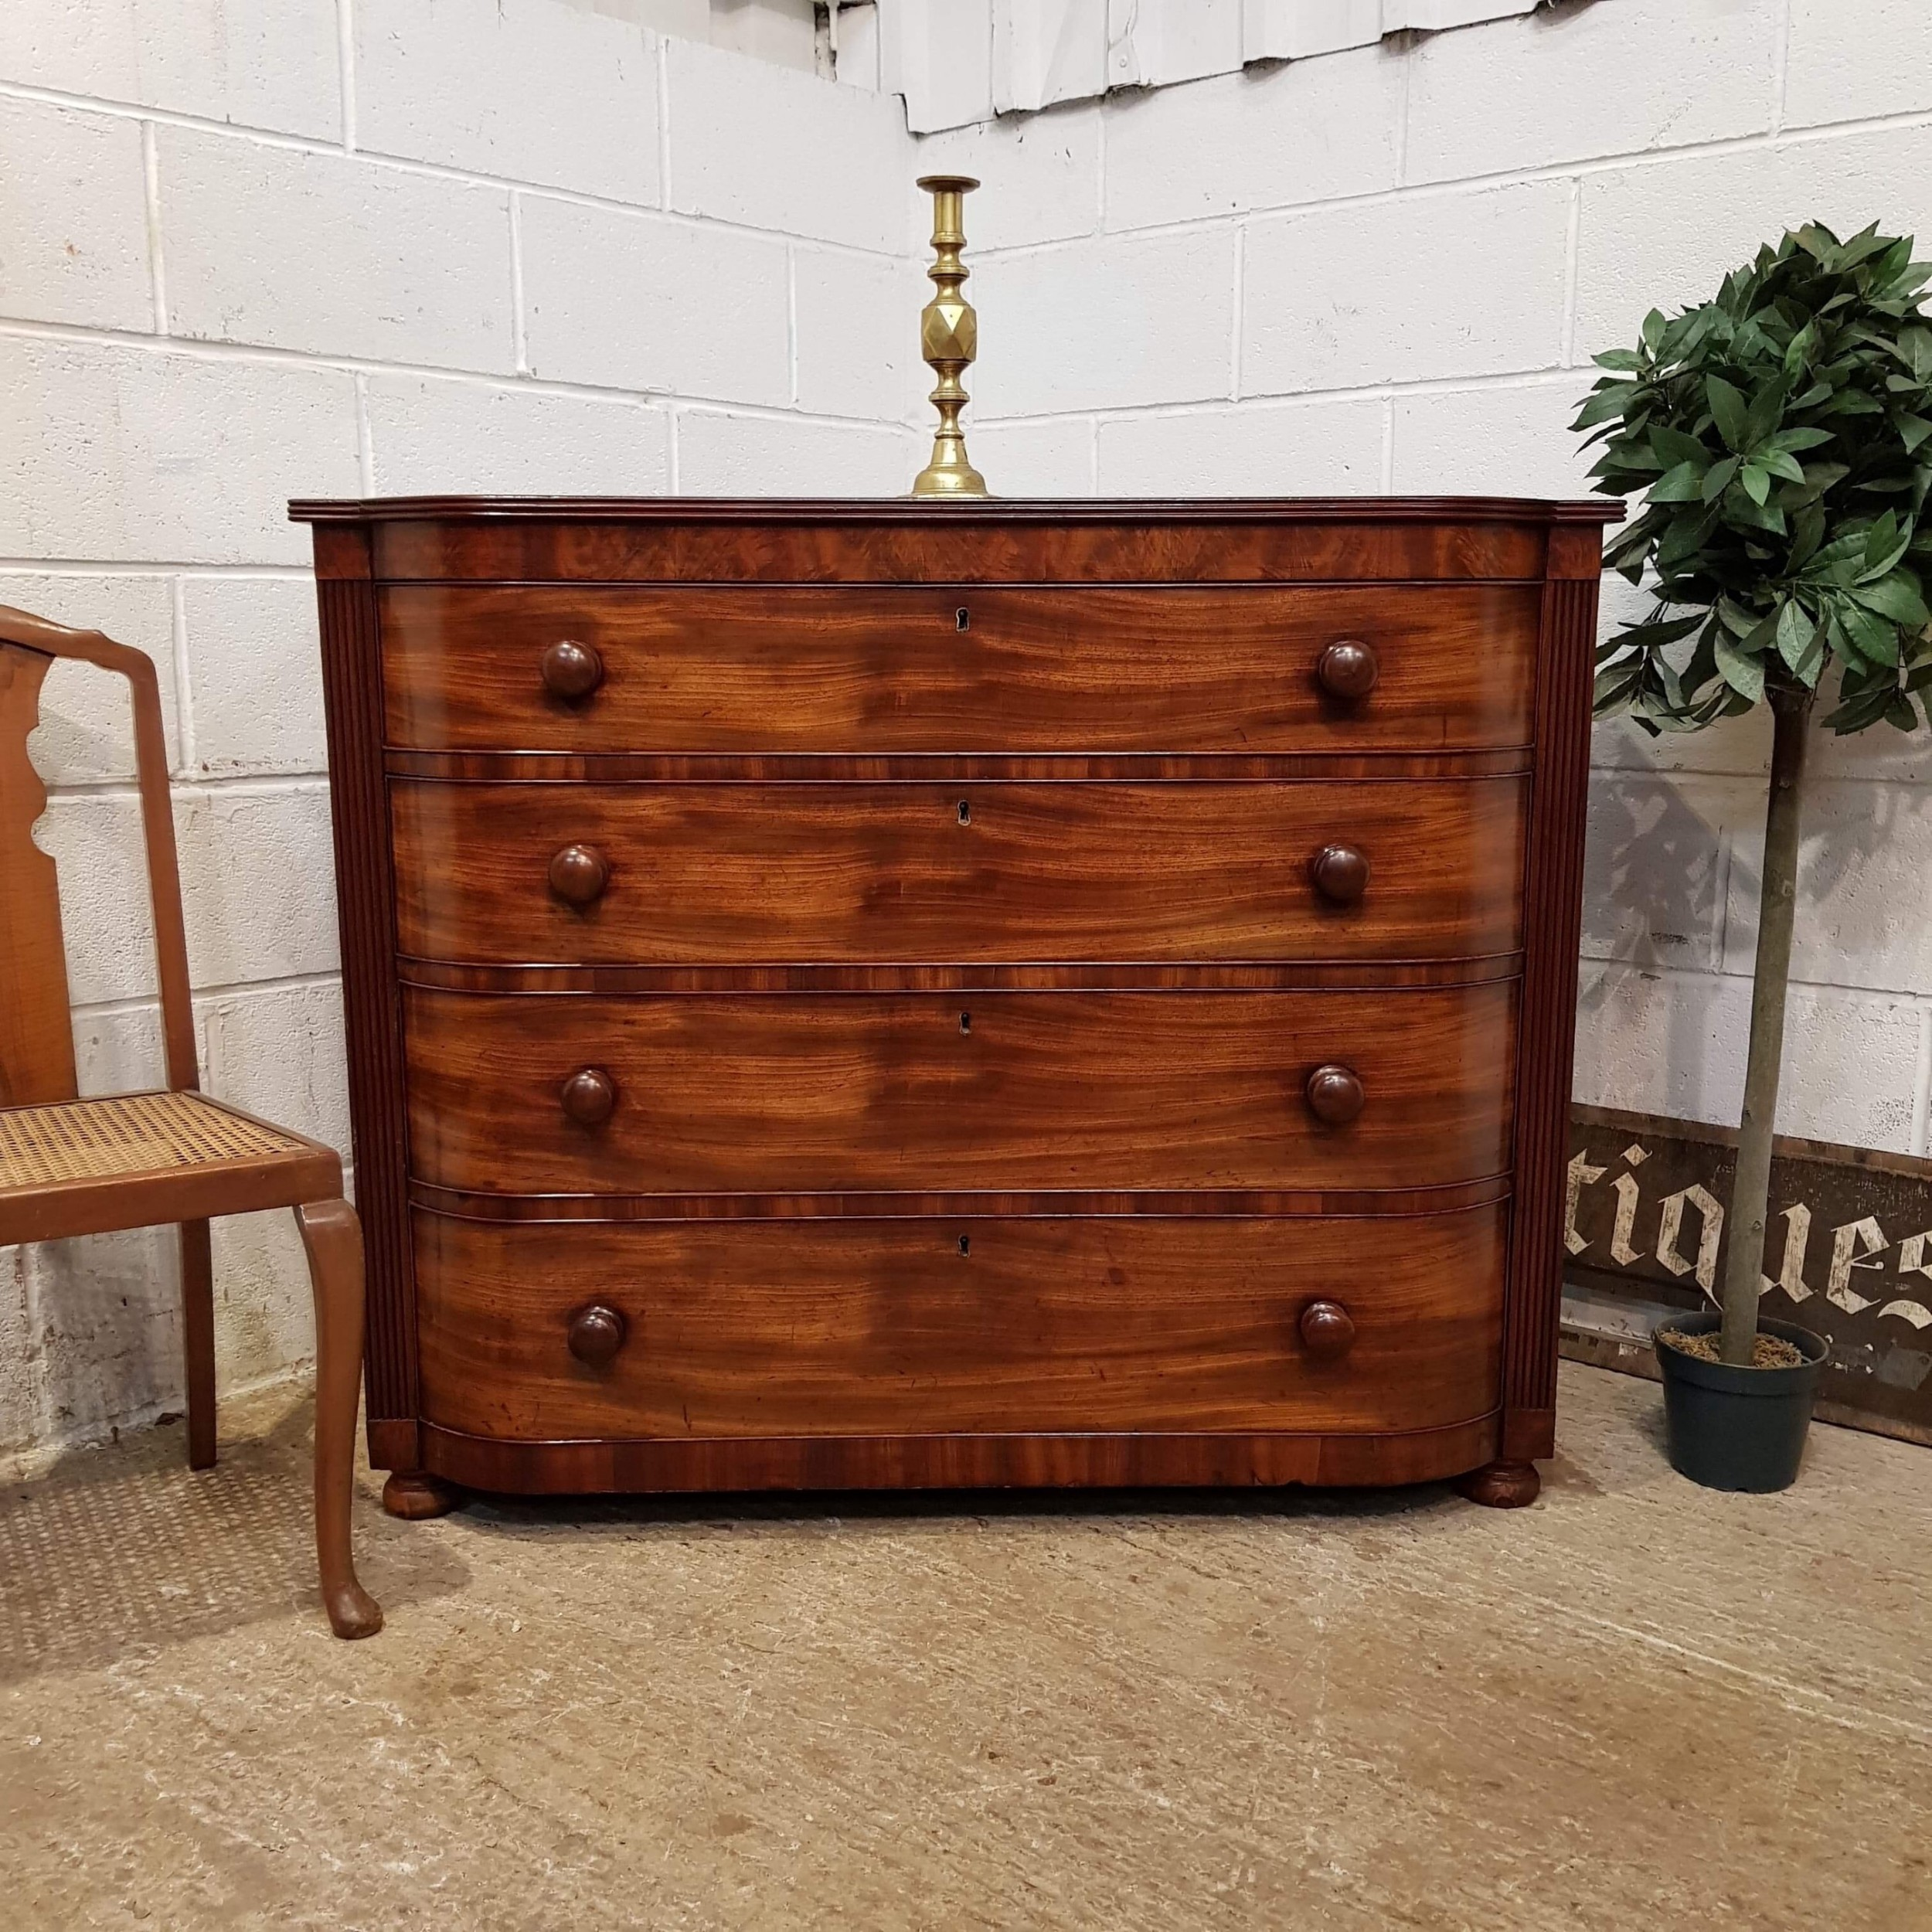 antique william 1v bow front mahogany chest of drawers c1830